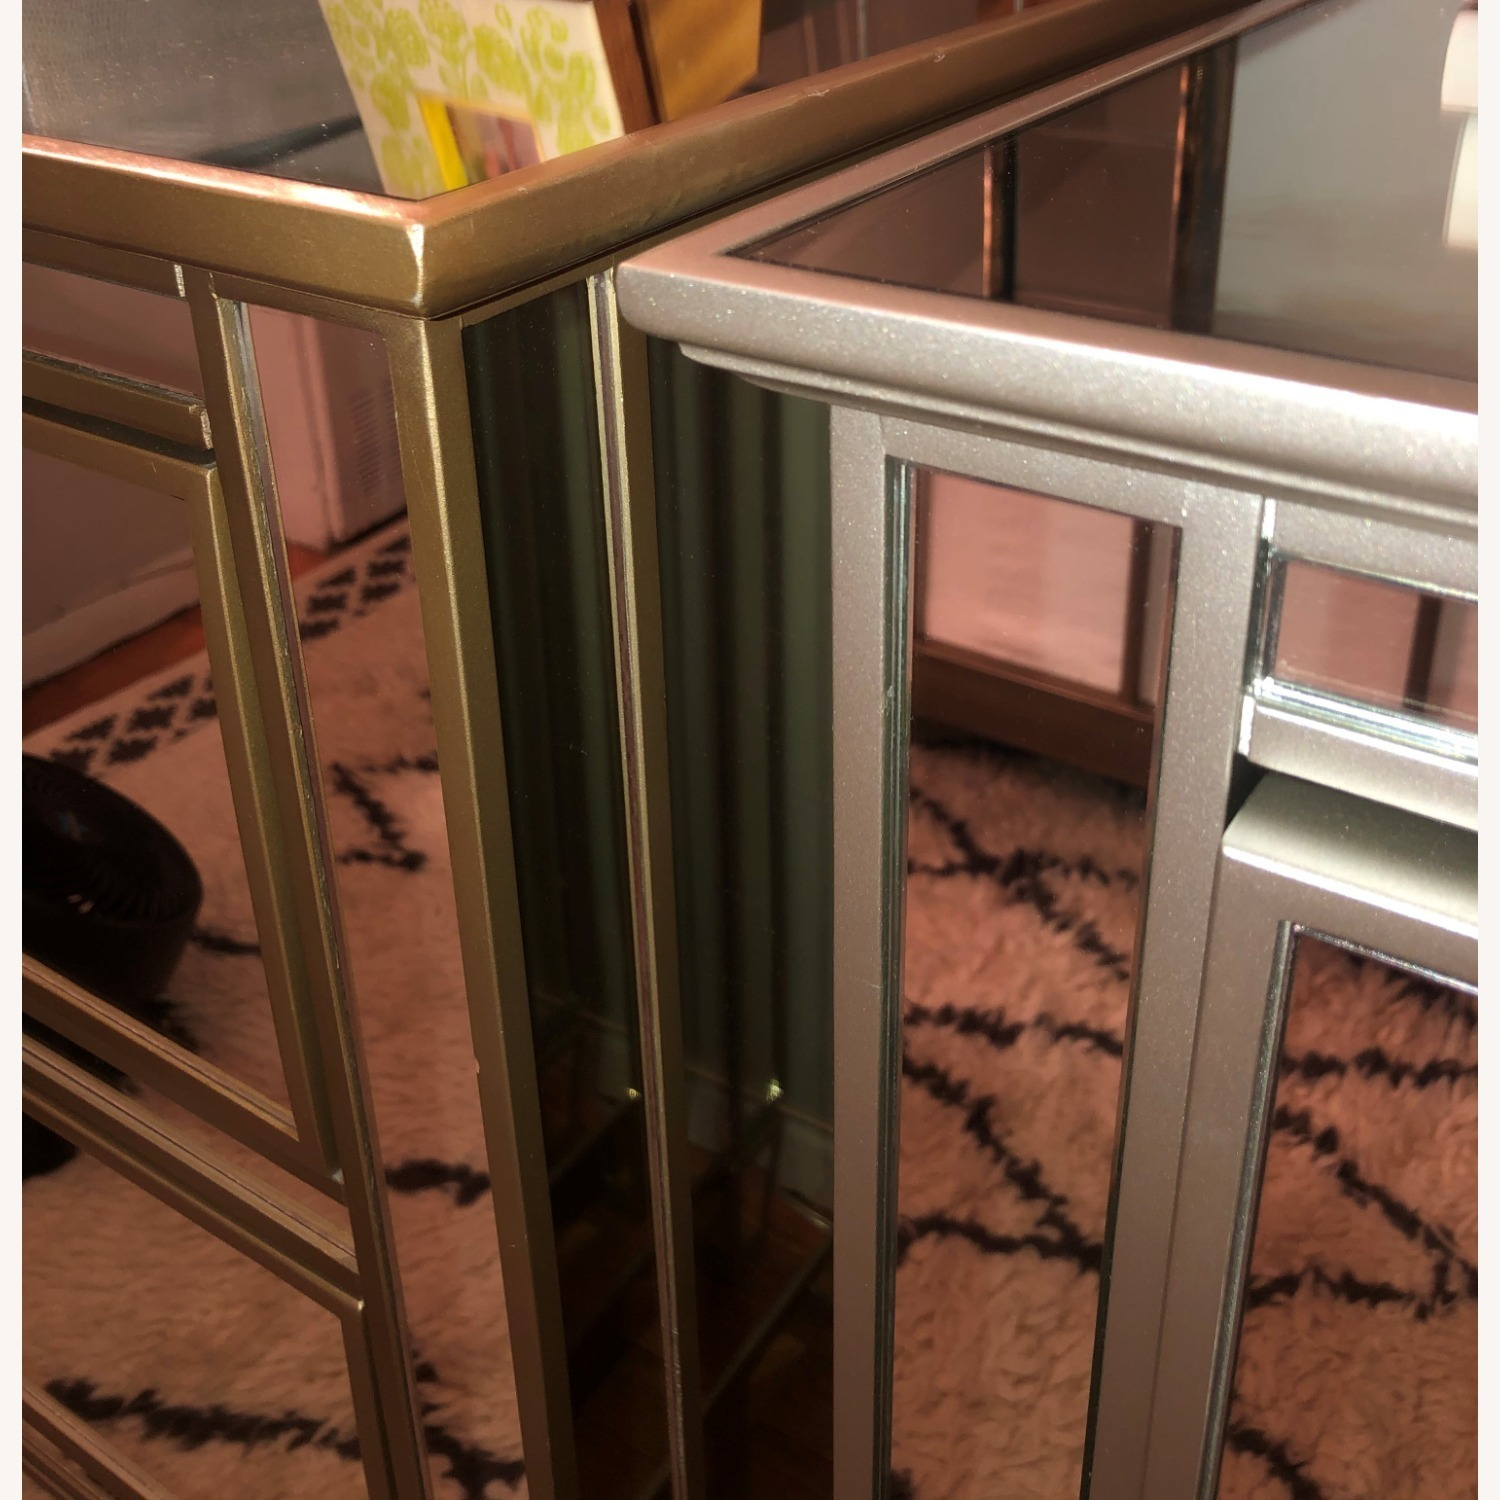 Pottery Barn Parker Mirrored Dressers - image-4